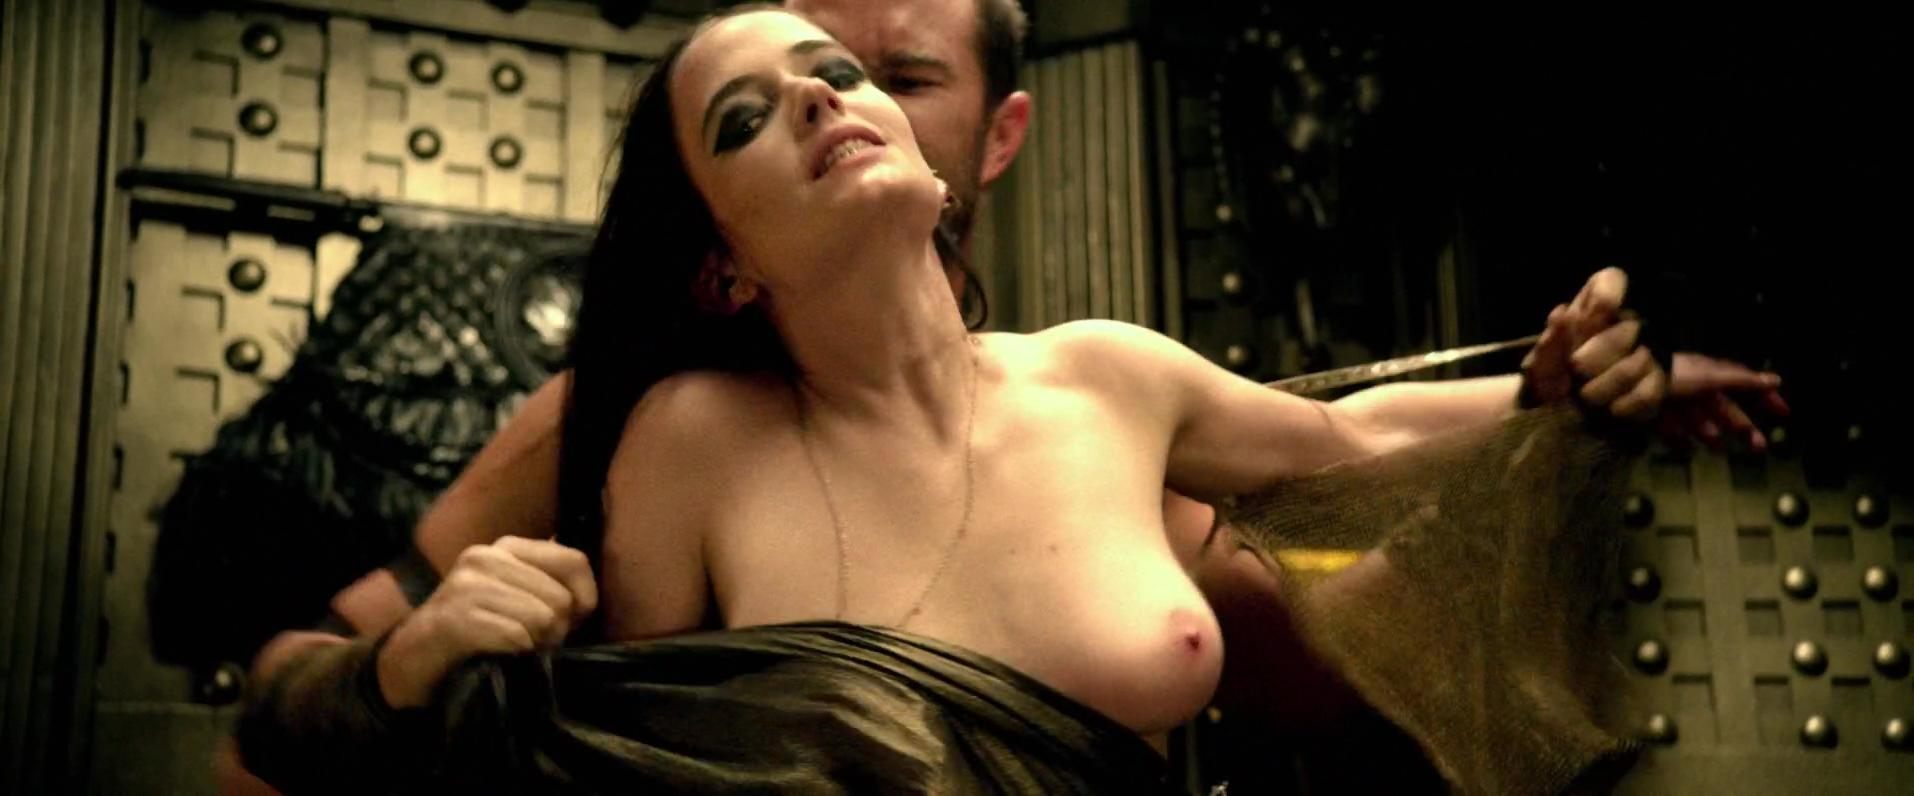 Green eva green camelot riding sex